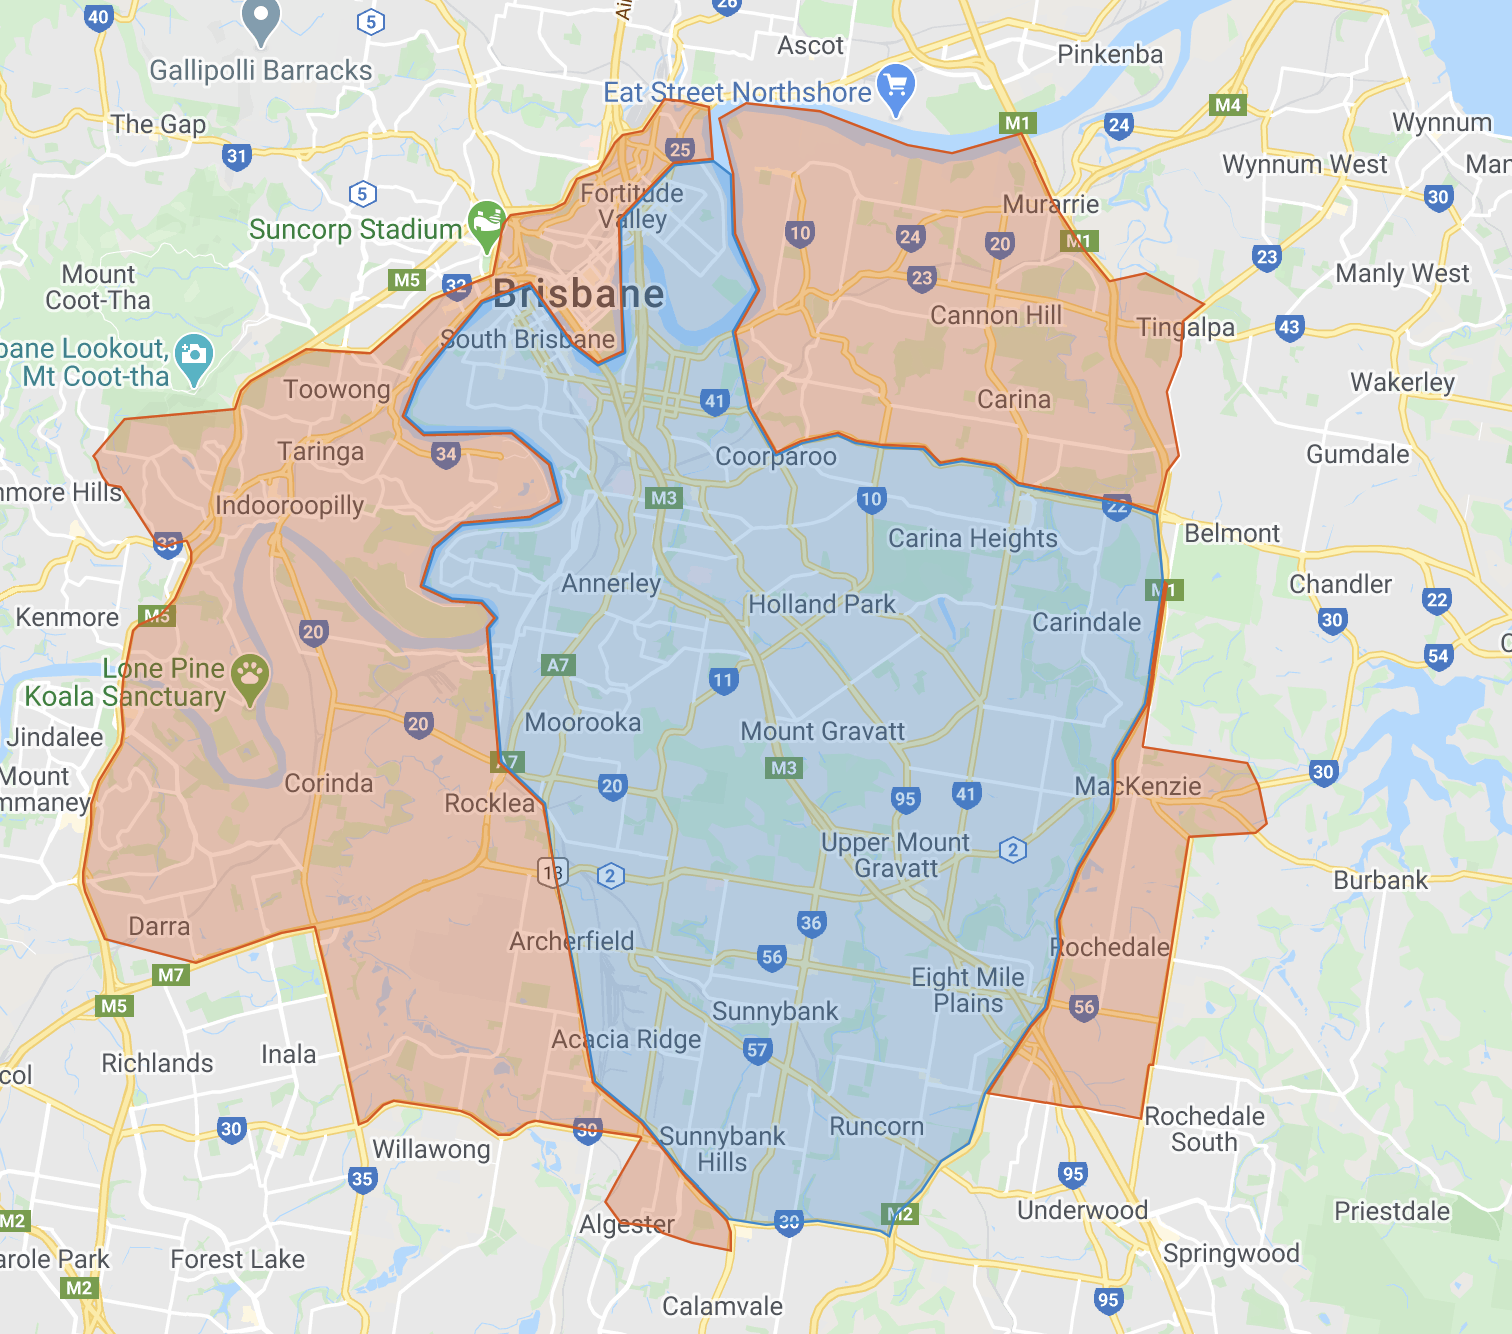 Map with blue highlighted area for regular service area (suburbs listed below)